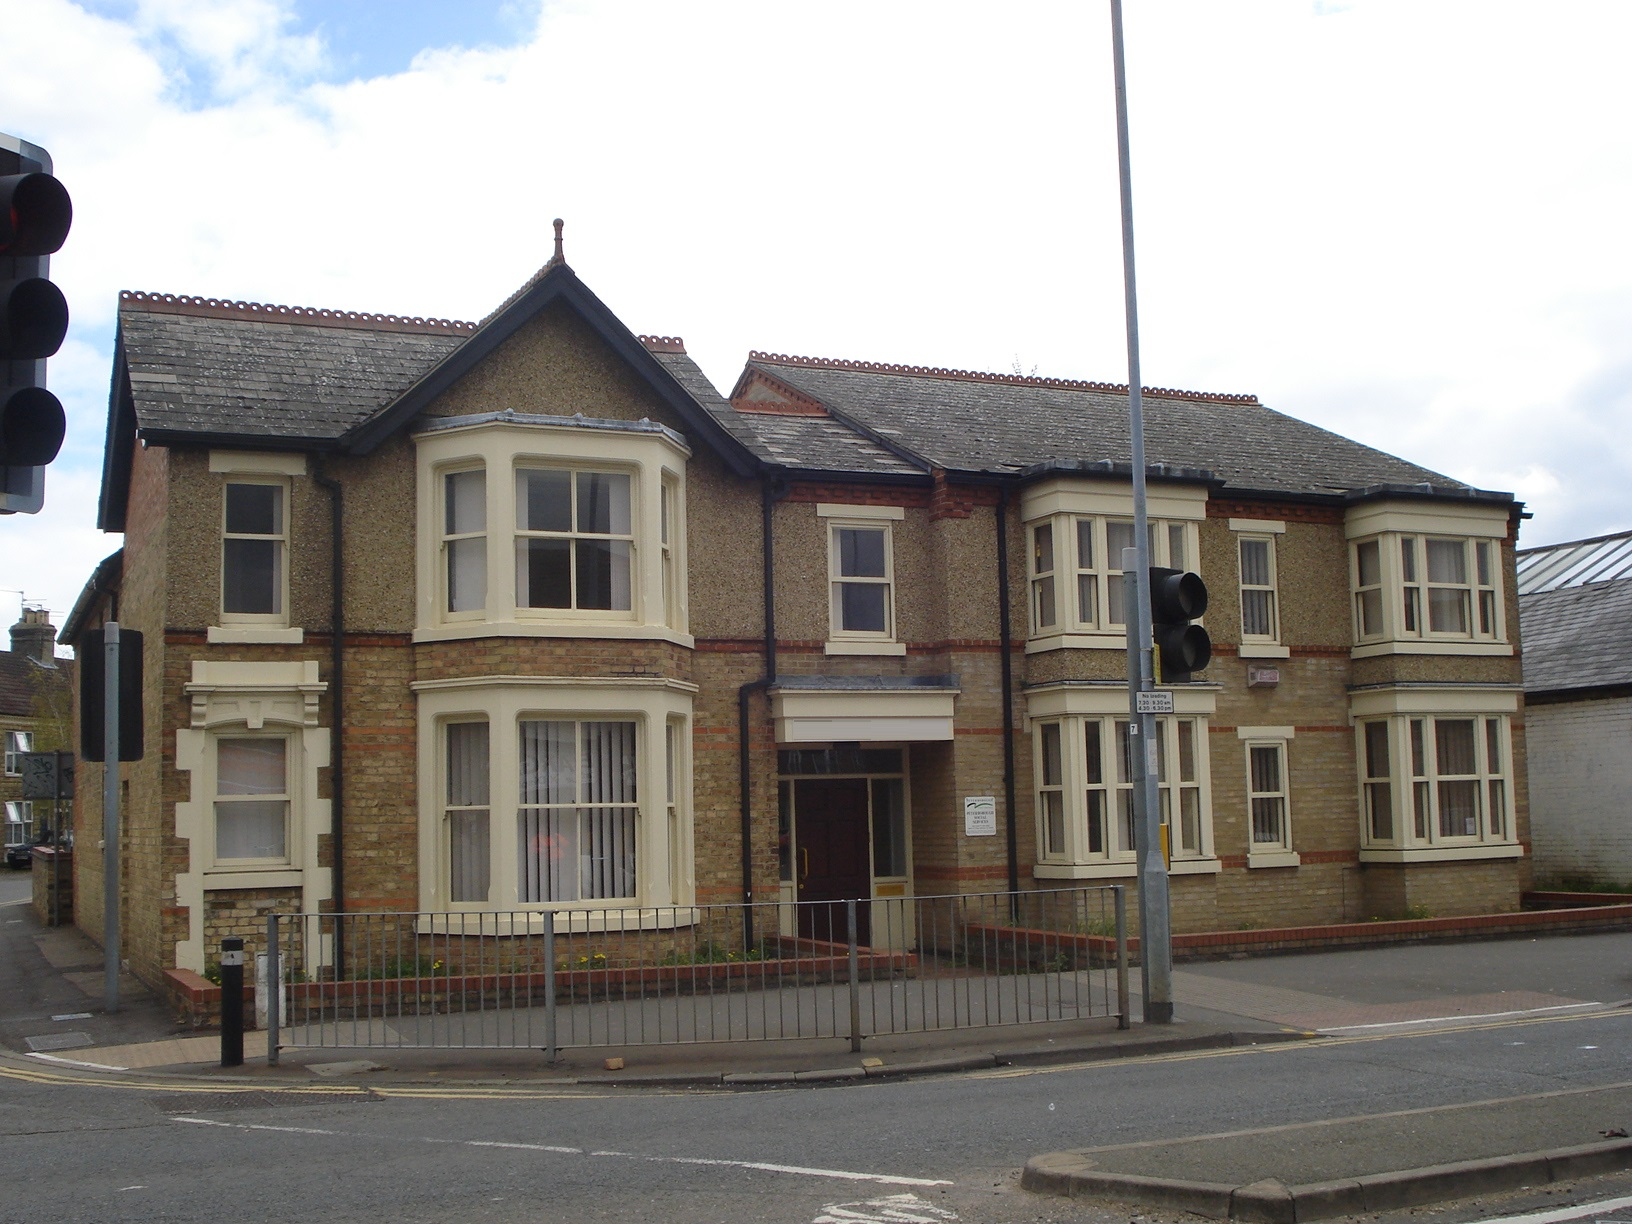 SP Laxton House - 191 Lincoln Road, PE1 - Peterborough